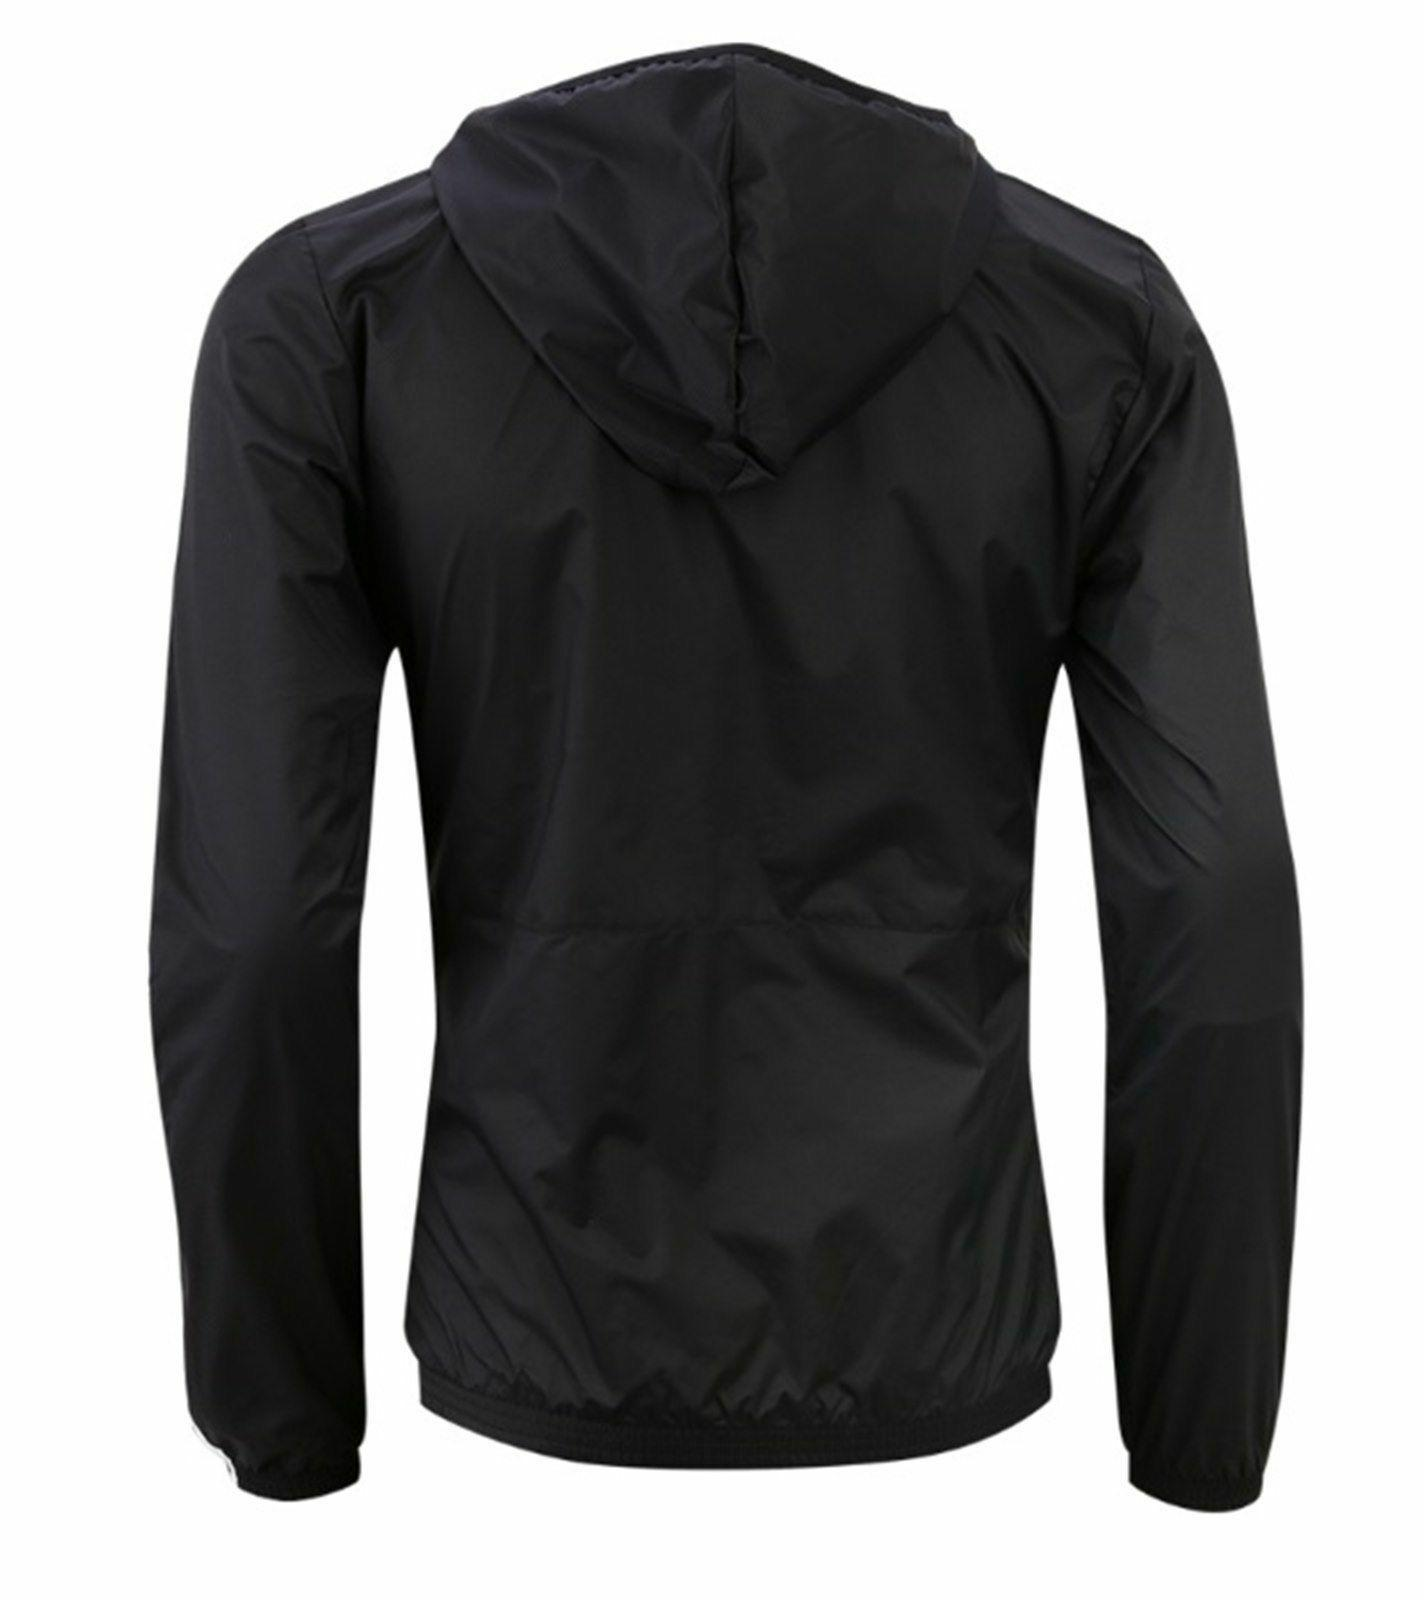 NEW MEN'S ADIDAS ESS JACKET